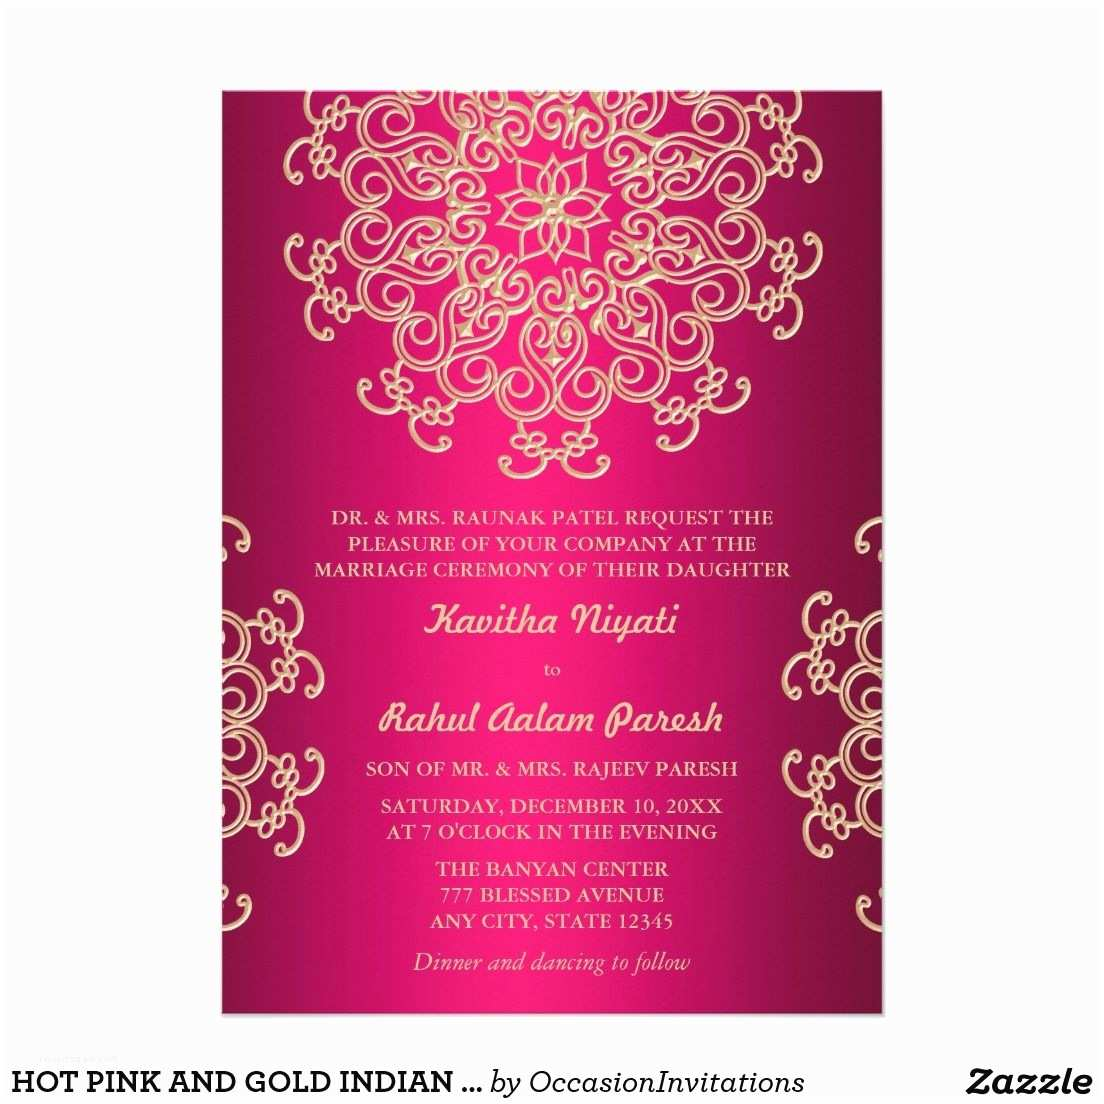 Ring In the New Year Wedding Invite Hot Pink and Gold Indian Style Wedding Invitation